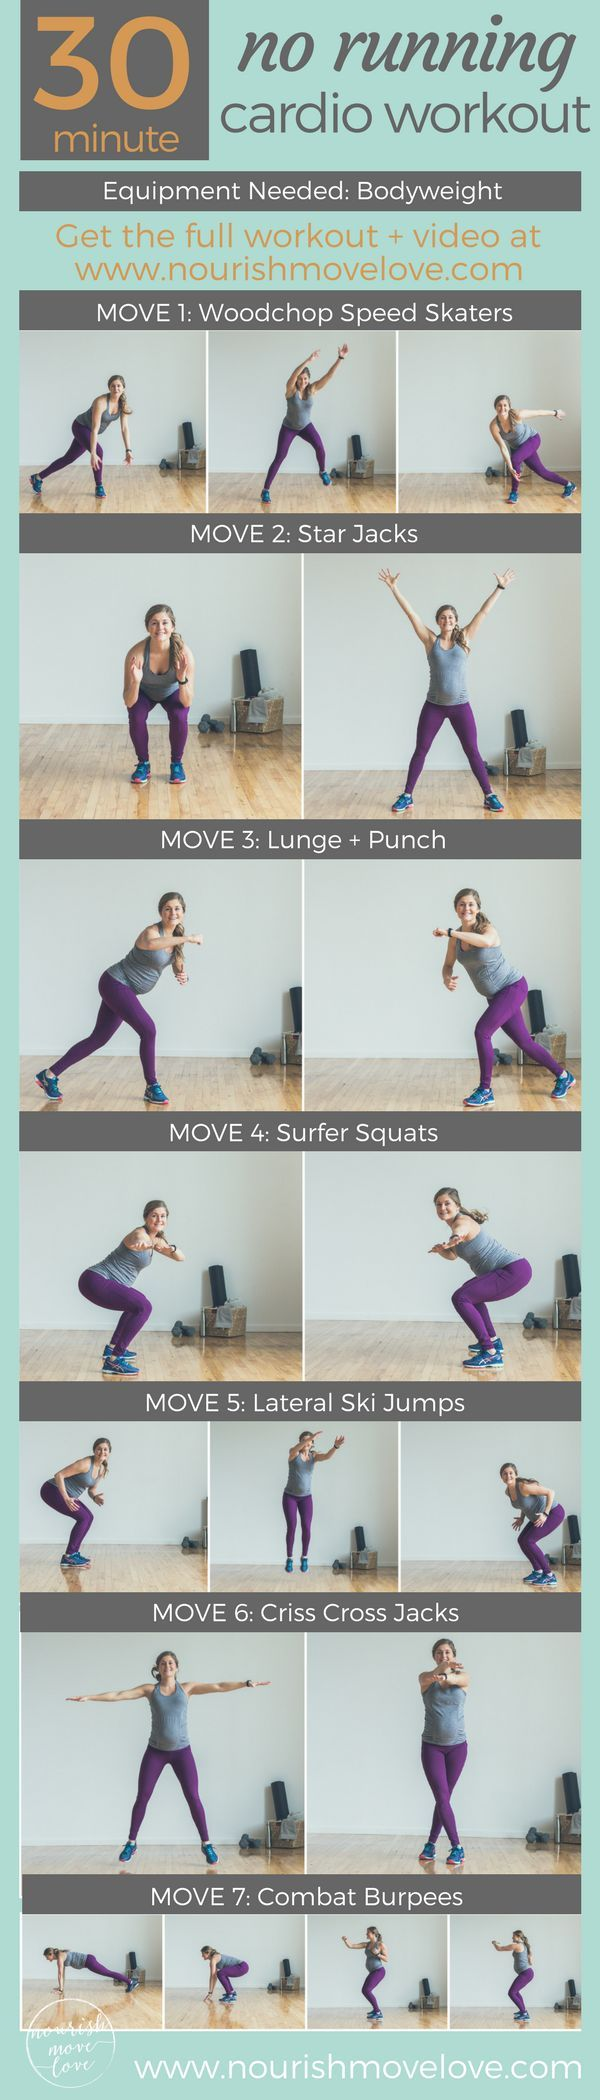 raise your heart rate with these 7 bodyweight exercises for a complete 30-minute, no running at-home cardio workout. Speed skaters, star jacks, lunges, squats, jumping jacks, and burpees for a full body burn. Click to website for full workout + video.